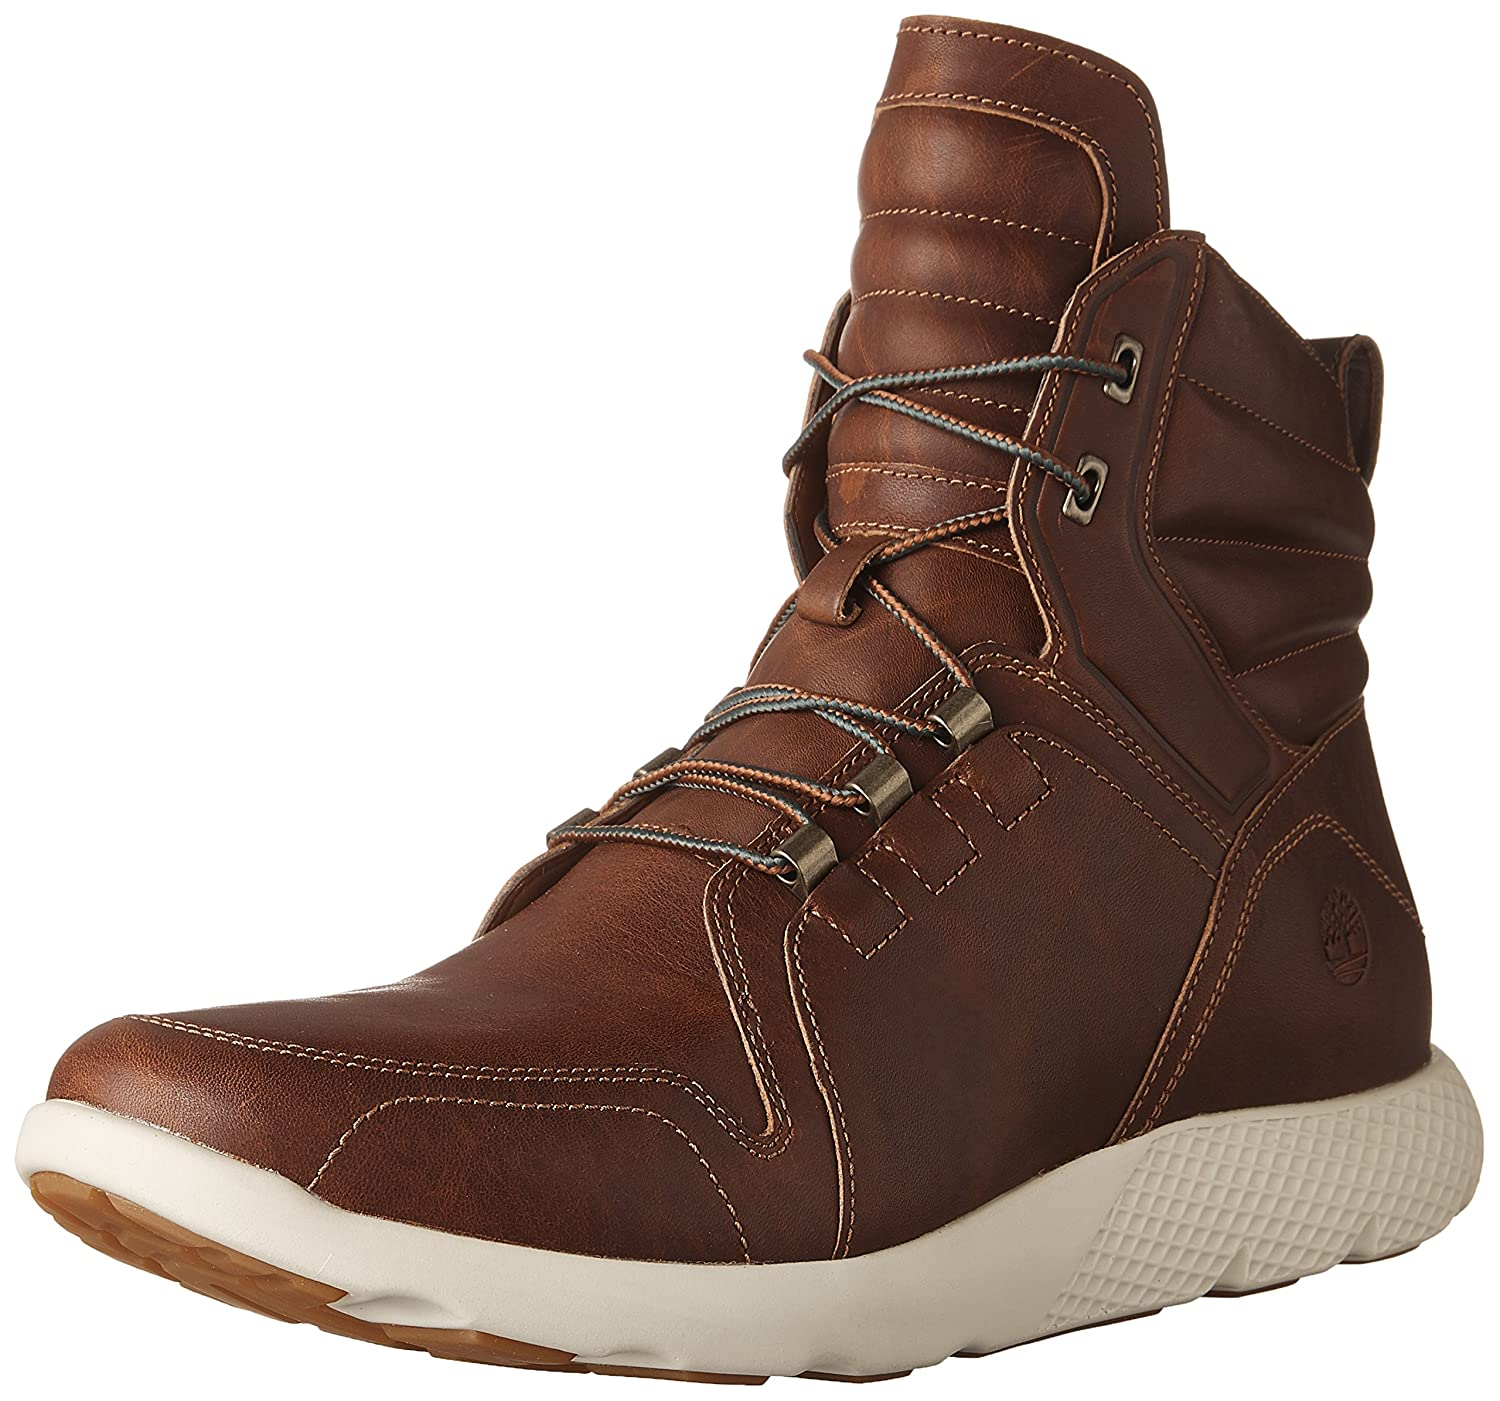 Timberland Men's Fly Roam Leather Fashion Boots TB0A1J1B715